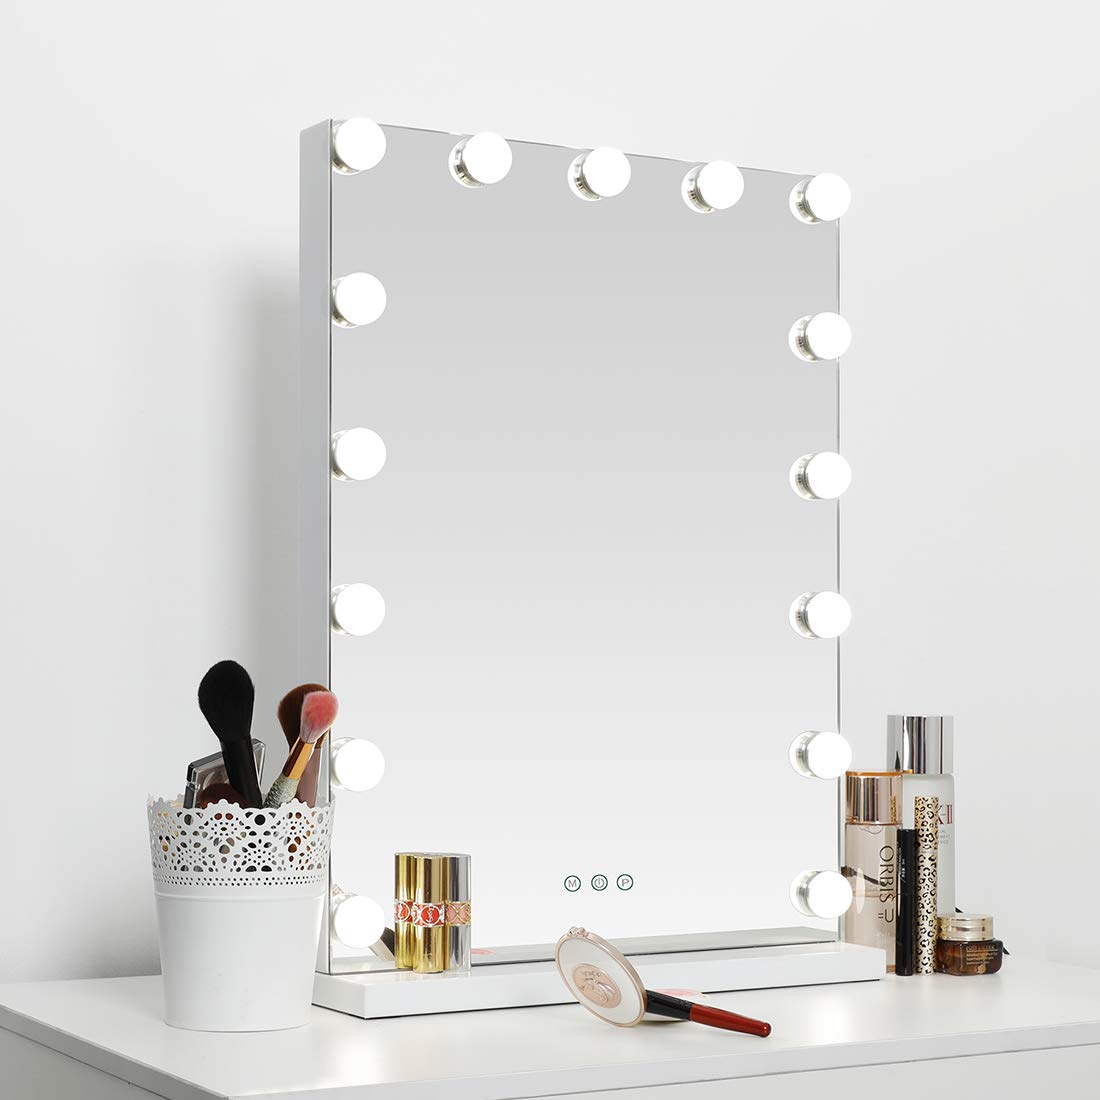 SHOWTIMEZ Hollywood Lighted Vanity Mirror with 15 Dimmable Bulbs, USB Charging port, 3 Light Modes, Frameless Tabletop Makeup Mirror with Smart Touch Control, W16.9 xH22.8 , White